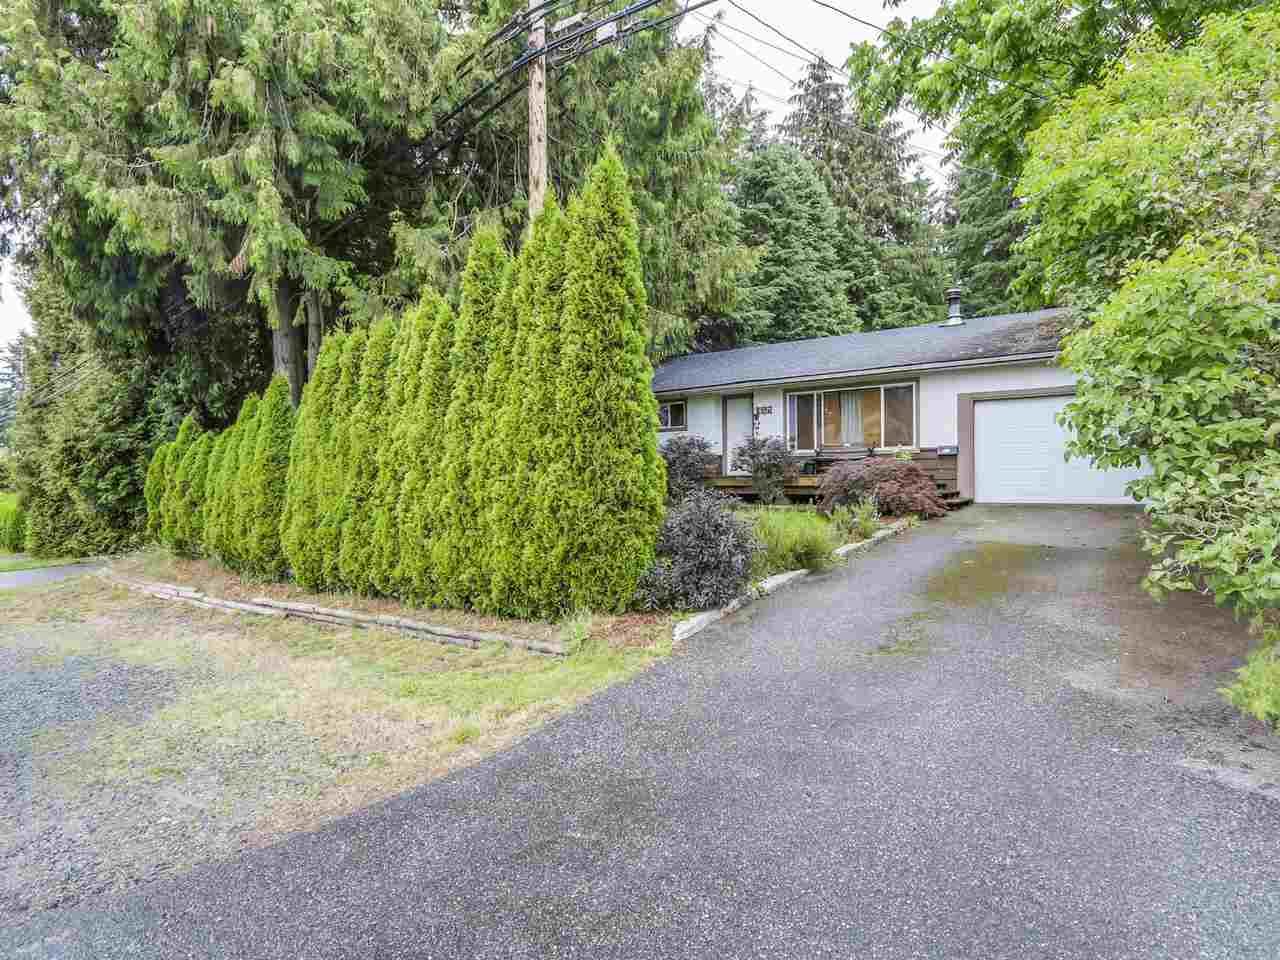 Main Photo: 2068 MCKENZIE Road in Abbotsford: Central Abbotsford House for sale : MLS® # R2087417